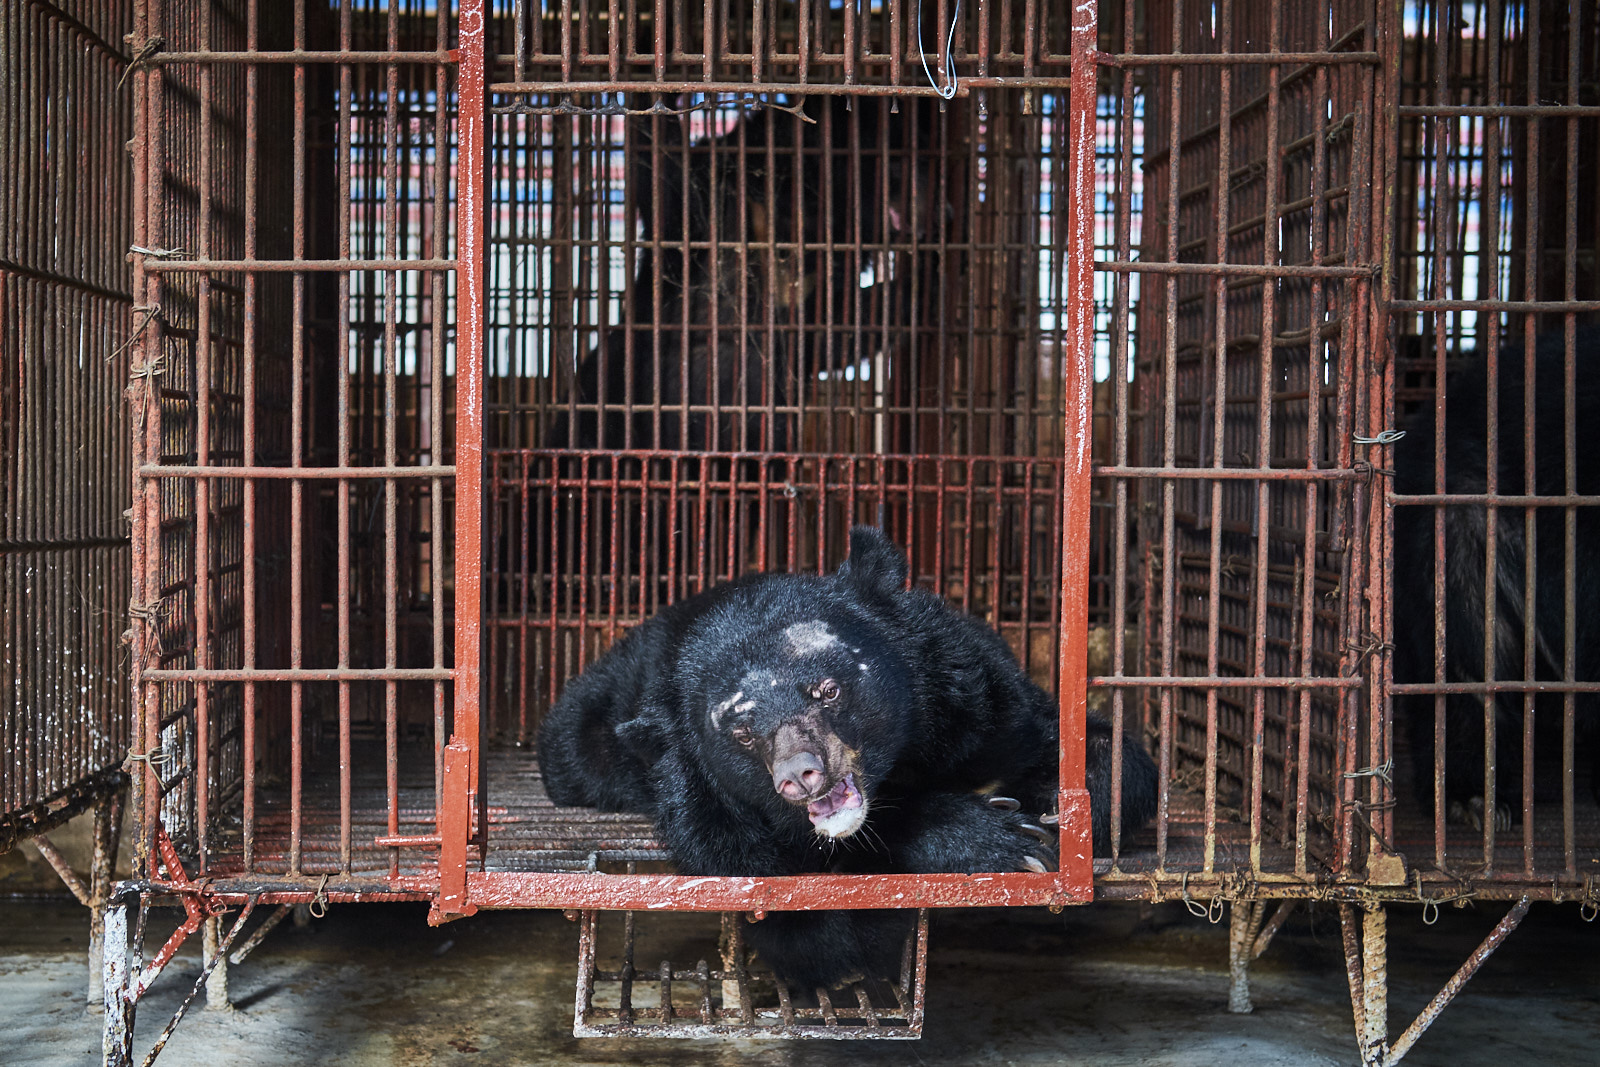 Trại gấu tại Bình Dương – Bear farm NGO shoot for World Animal Protection